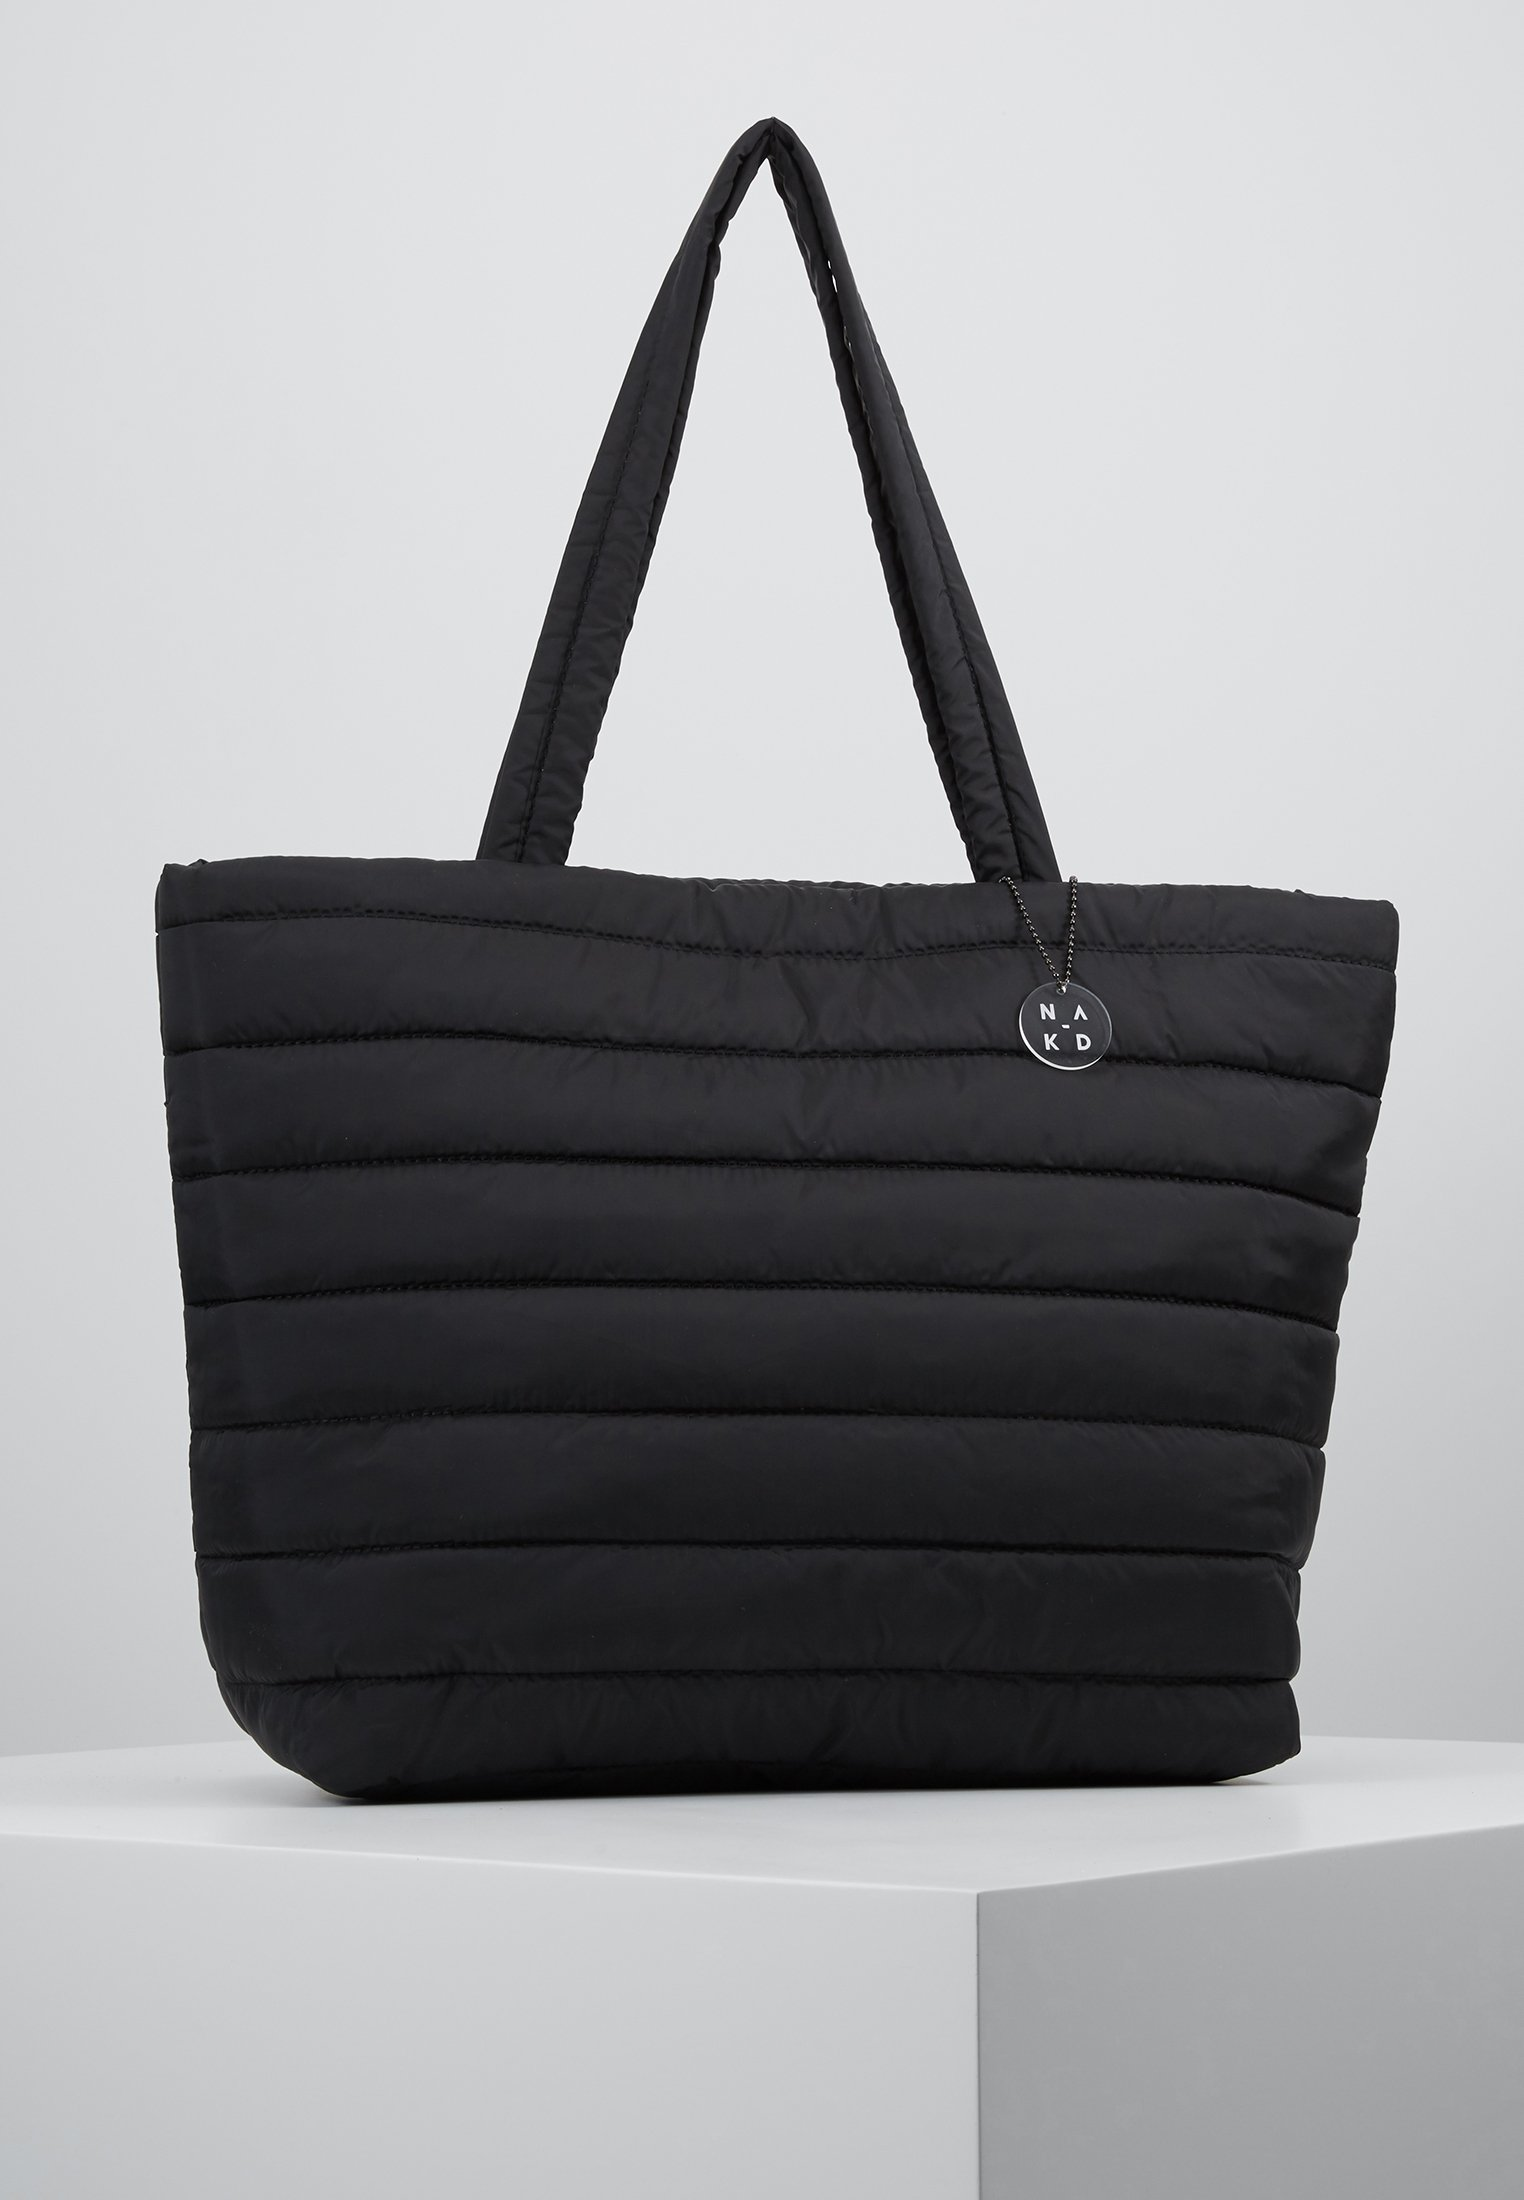 ShopperCabas Black Quilted Na kd Quilted ShopperCabas Black Na Quilted kd kd Na 1KJF3Tcl